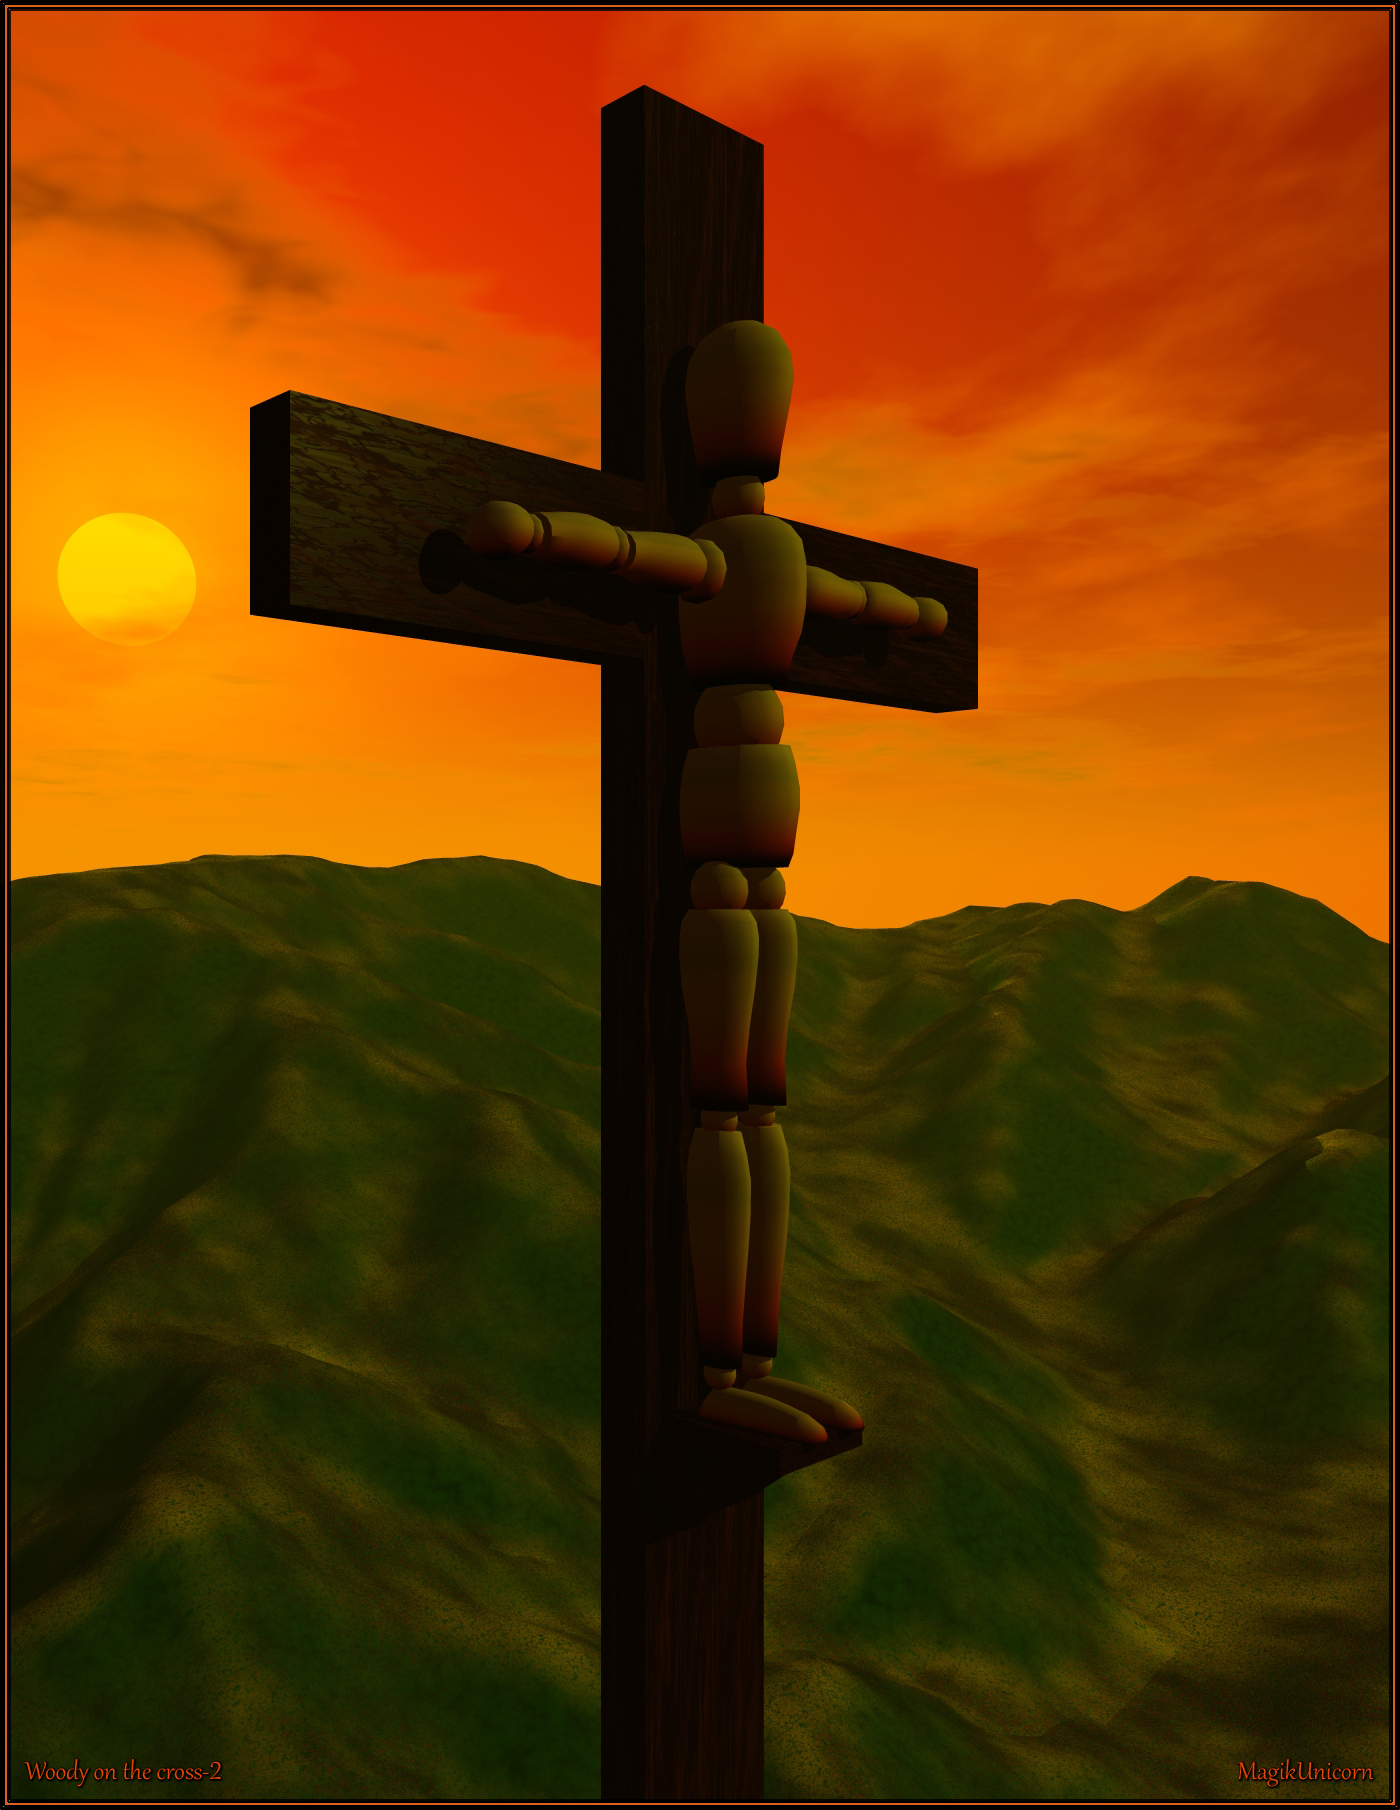 Woody on the cross-2